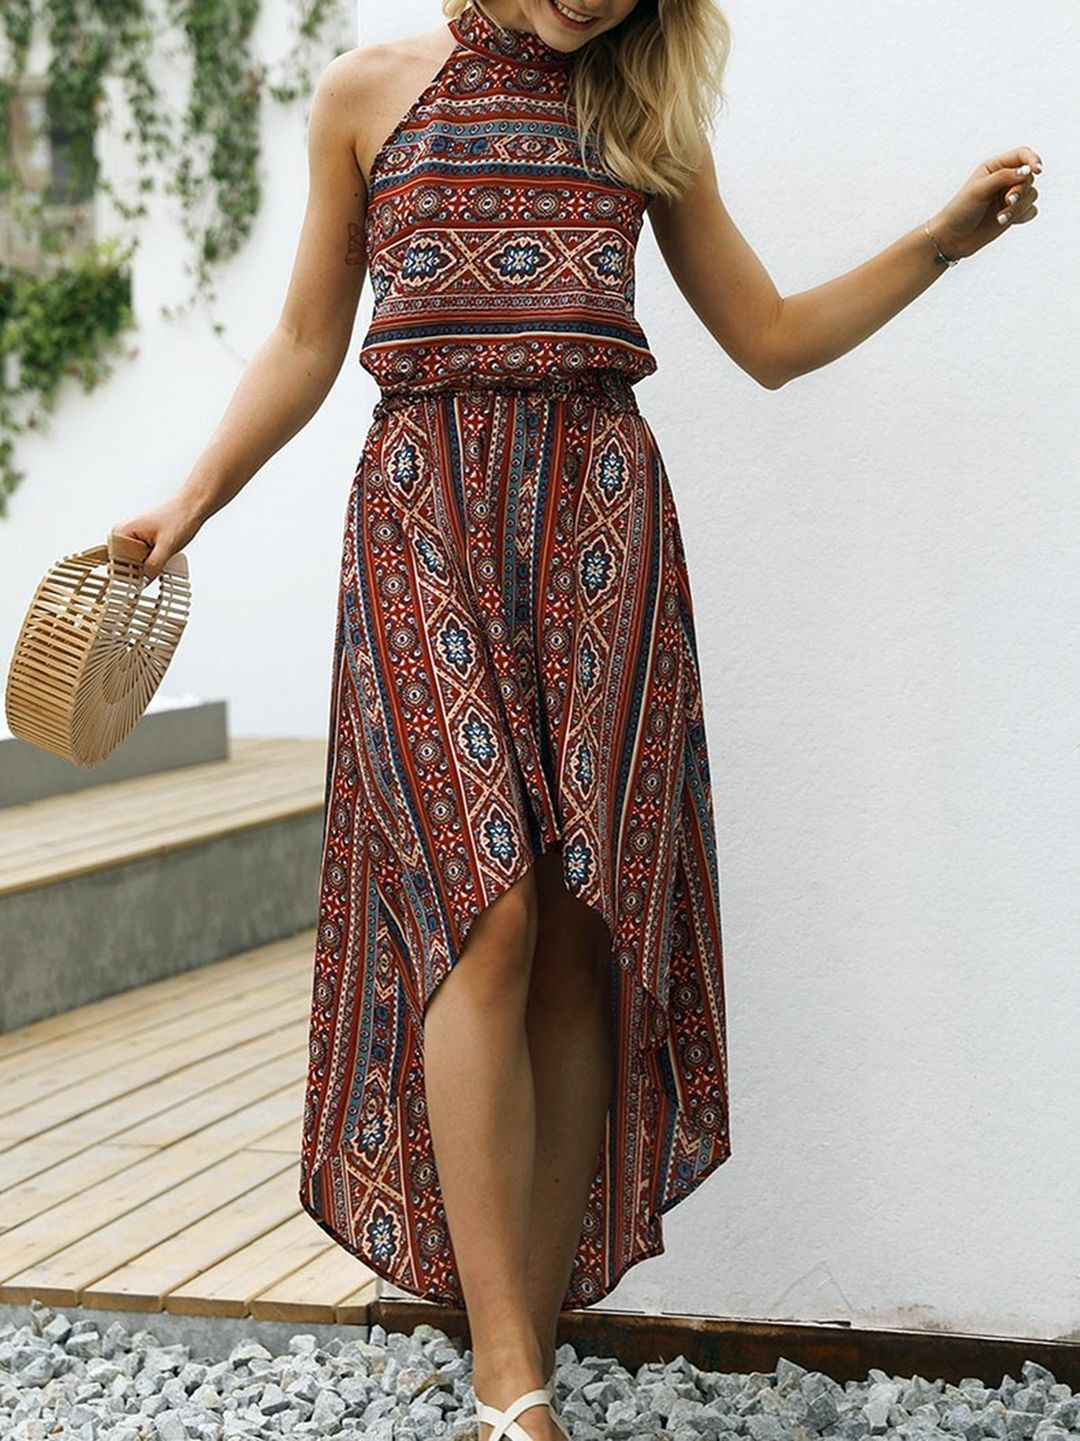 13 Charming Bohemian Summer Dresses Collections Womenbohemiansummerdresses Womensummeroutf Boho Summer Dresses Trendy Dresses Summer Boho Dress [ 1441 x 1080 Pixel ]